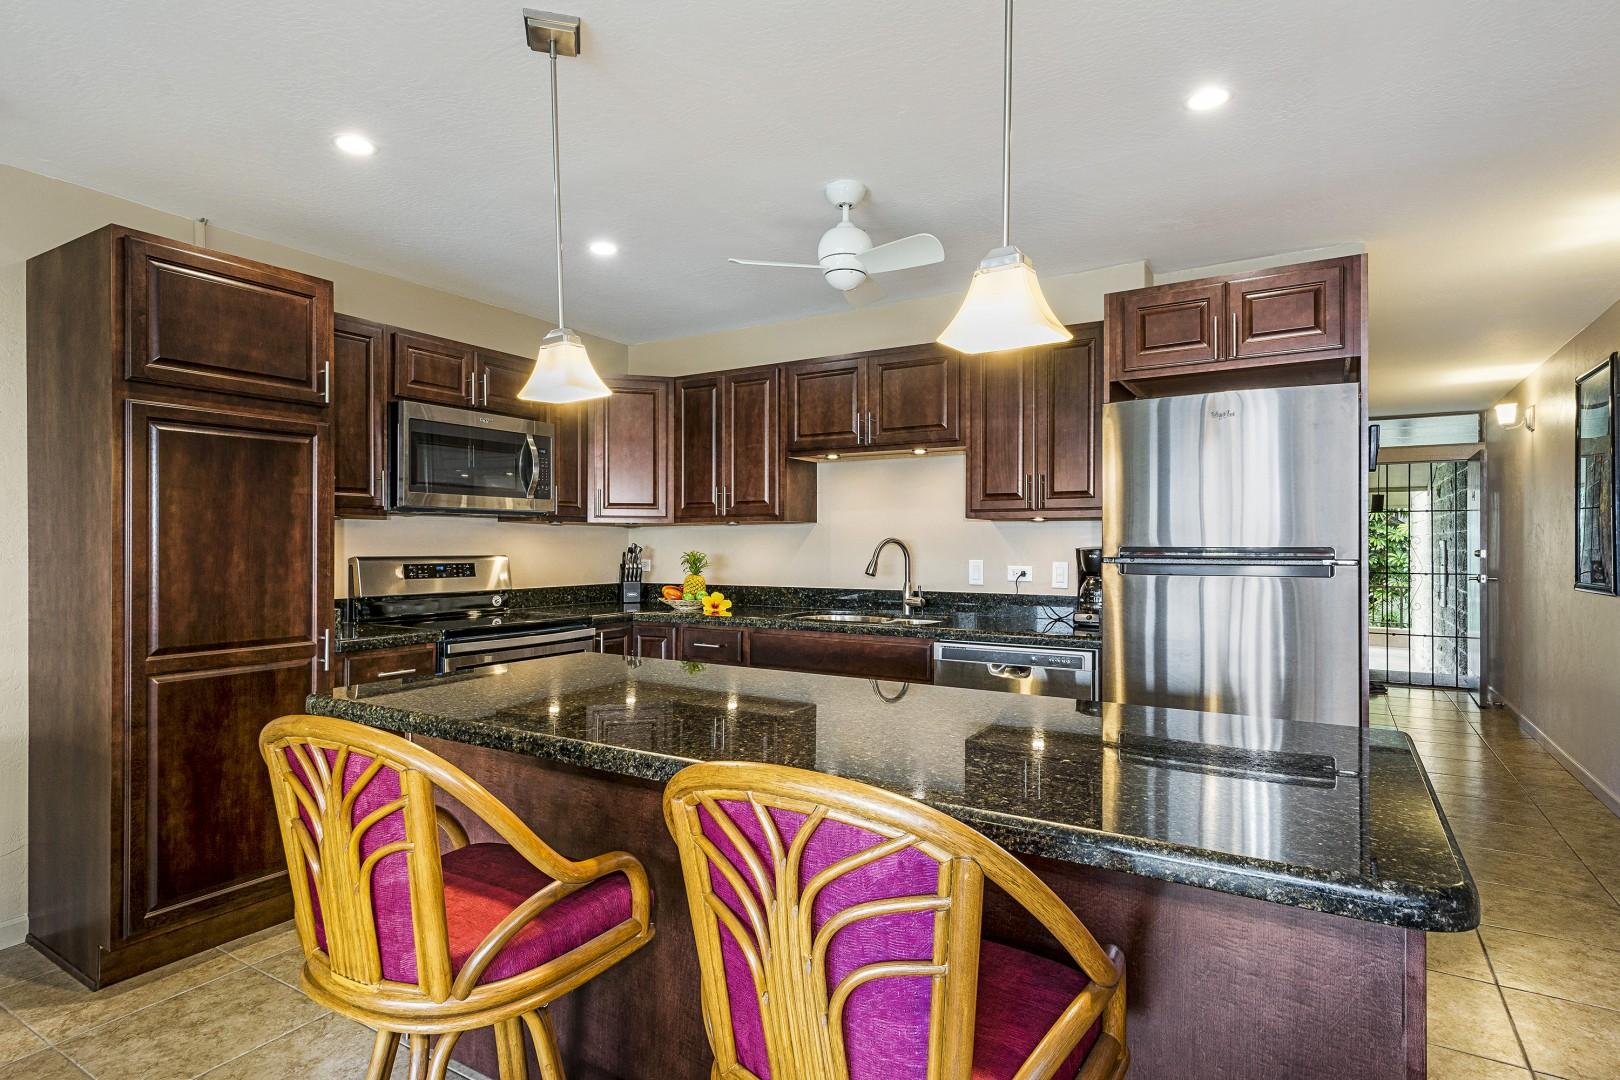 Breakfast bar in this fully equipped Kitchen